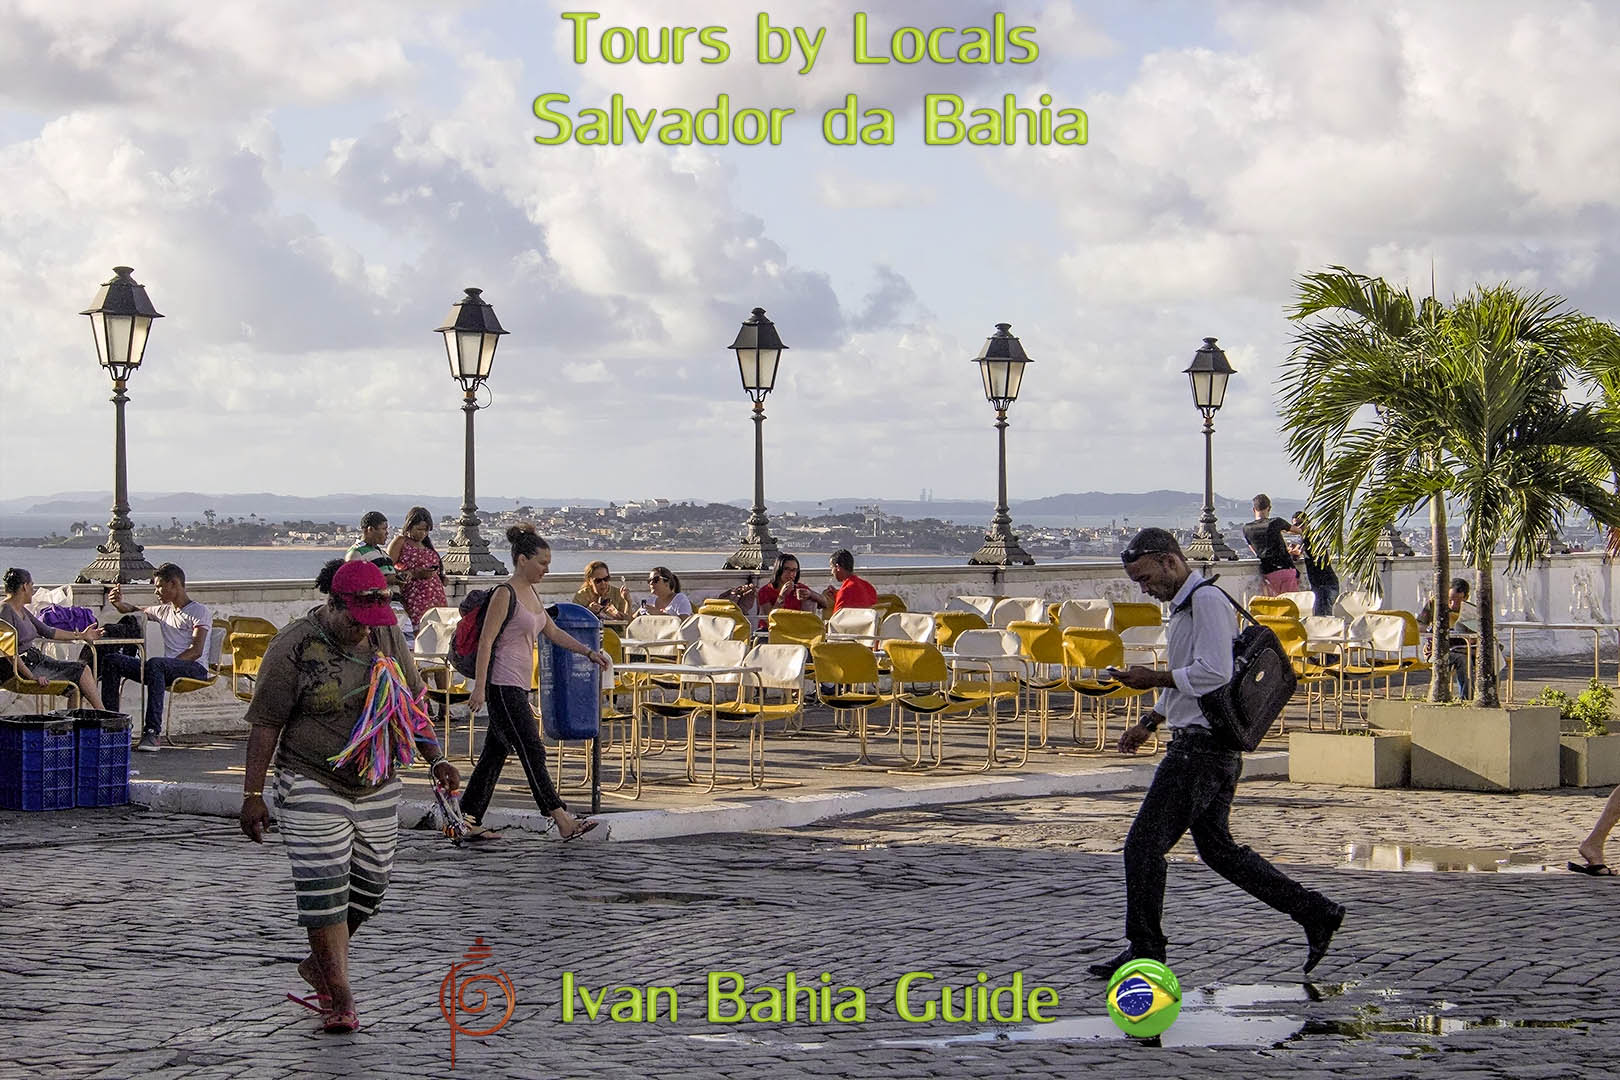 Discover Bahia with Ivan Bahia private tour-guide / travel agency, for the best experience in Salvador, Chapada Diamantina National Park and Bahia /NE-Brazil - Photography by Ivan Bahia Guide, traveling in Brazil, reisgids in Brazilie #IvanBahiaGuide #BestofBrazil #IBG #BahiaMetisse #FotosBahia #SalvadorBahiaBrazil #BahiaTourism  #IvanSalvadorBahia #SalvadorBahiaTravel #ToursByLocals #FernandoBingreTourGuide #VoyageBresil #BresilEssentiel #SalvadorTourGuide #ChapadaDiamantinaTrekking #Lencois #Guidedetourismesalvadorbahiabresil #brazilhoneymoon #diamantinamountains